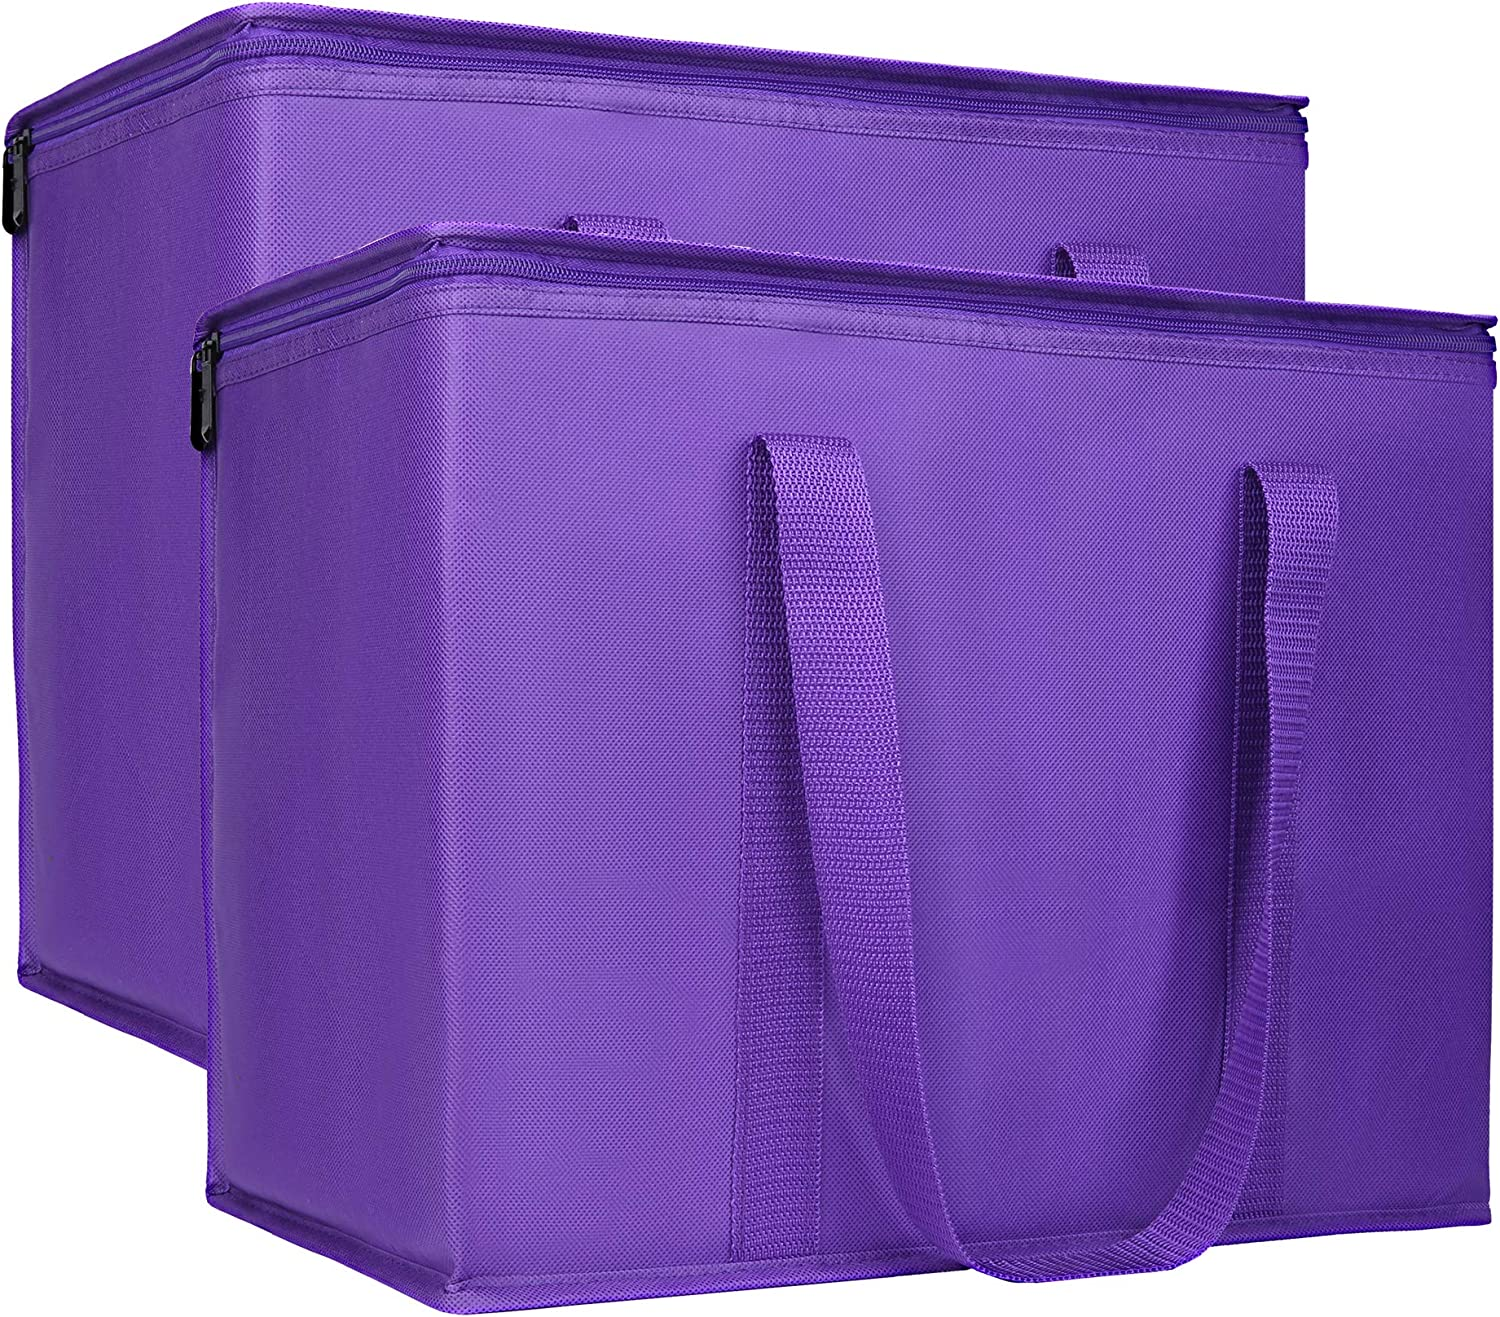 2 Insulated Reusable Grocery Bag with Zippered Top, XL, Large, Frozen Foods Cold, Cooler Shopping Accessories, Insullated Bags, Purple